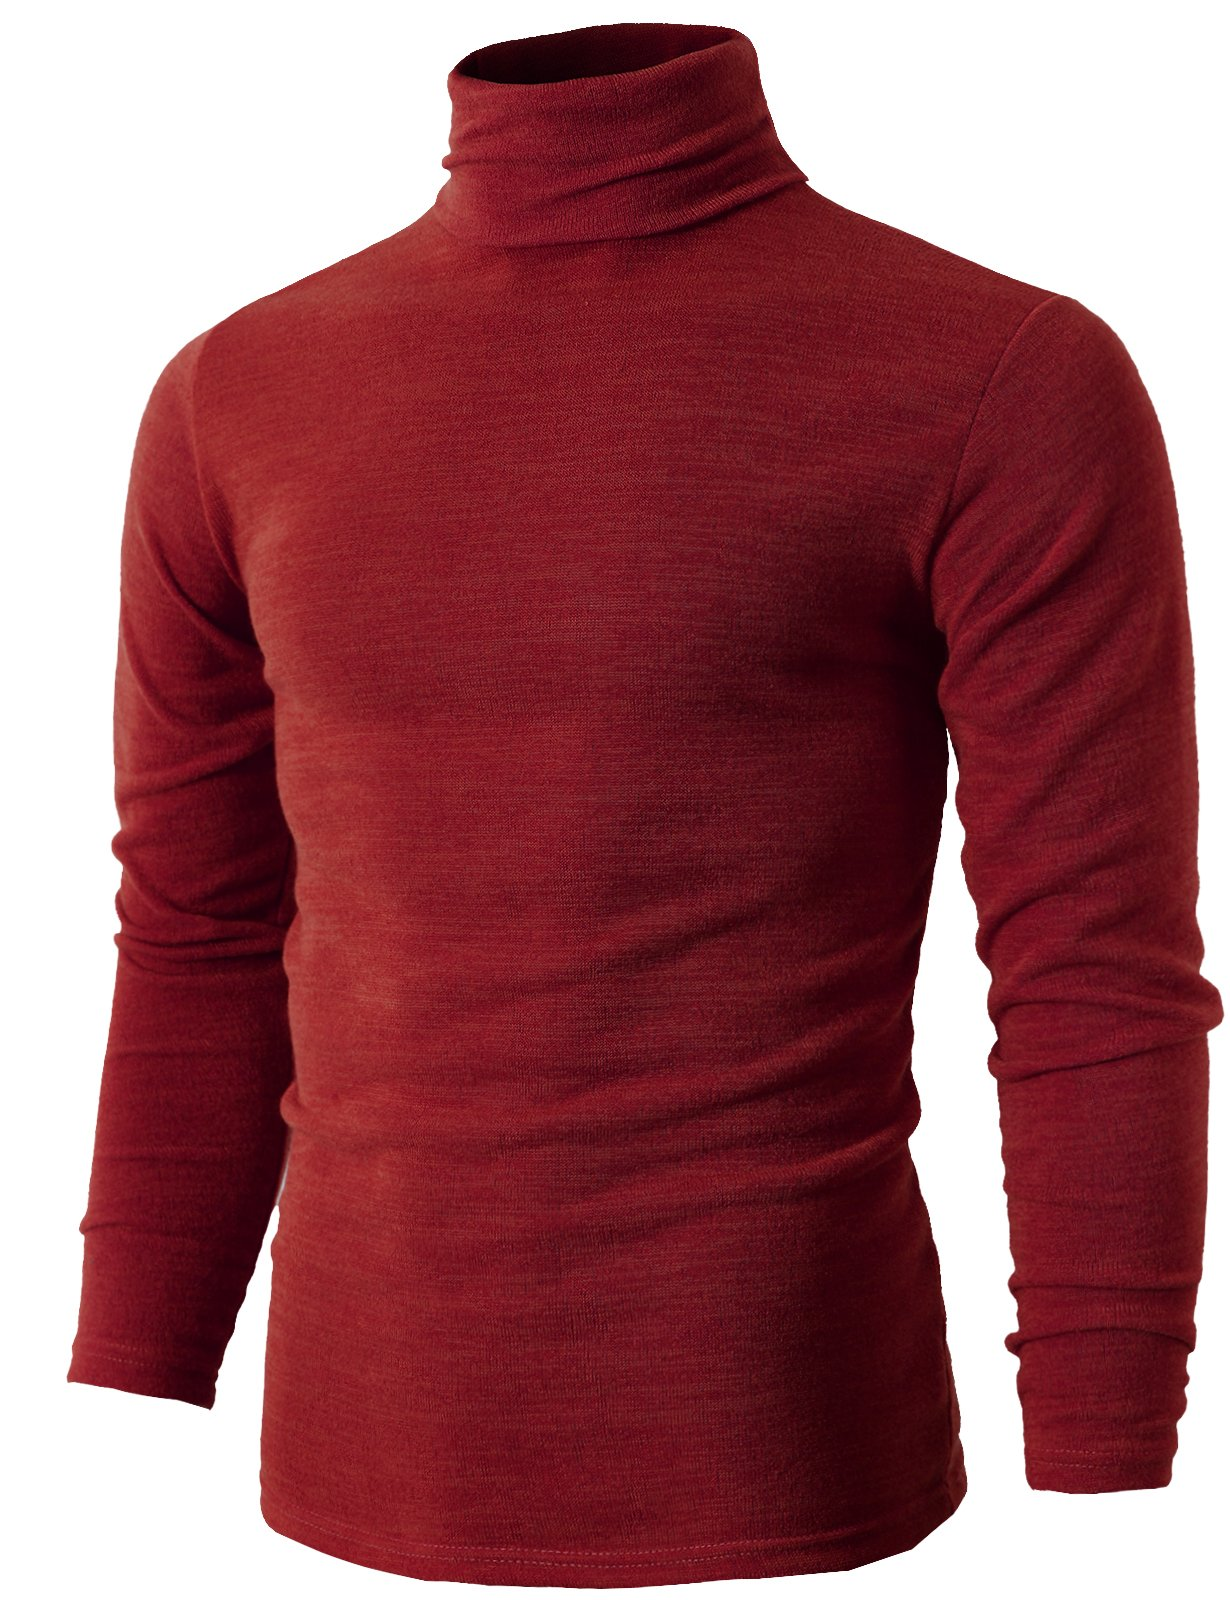 H2H Mens Basic Knitted Turtleneck Pullover Sweater RED US M/Asia XL (KMTTL028)